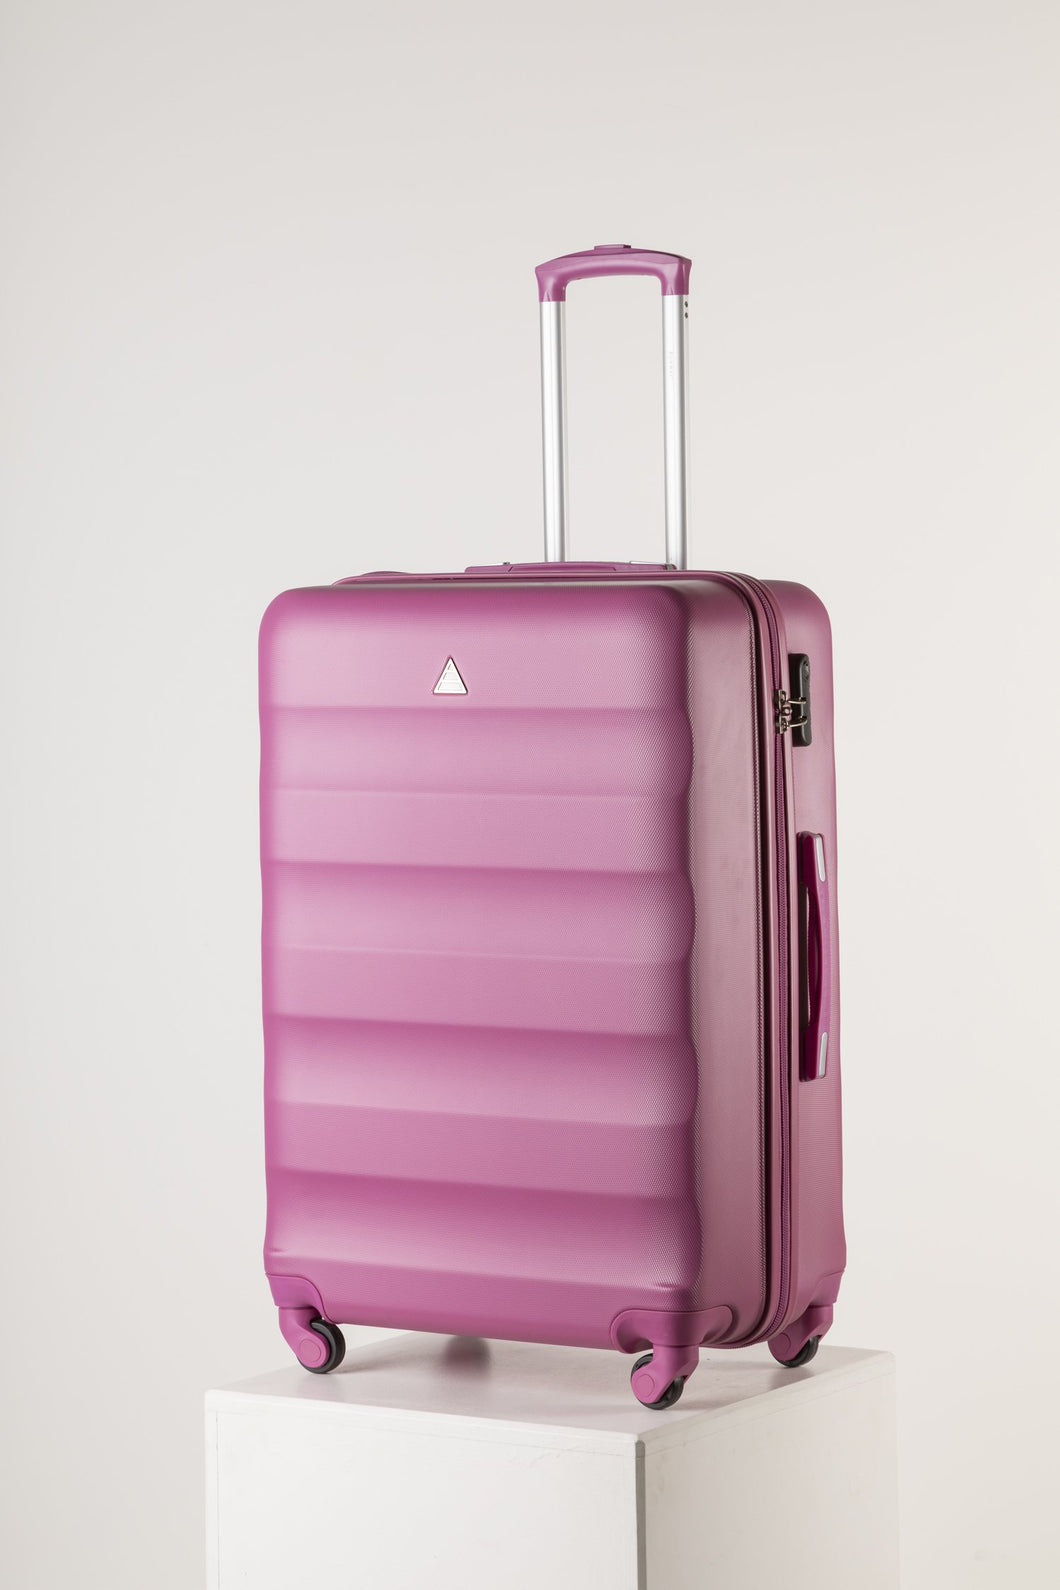 Extra Large Family Sized Luggage Bright Pink